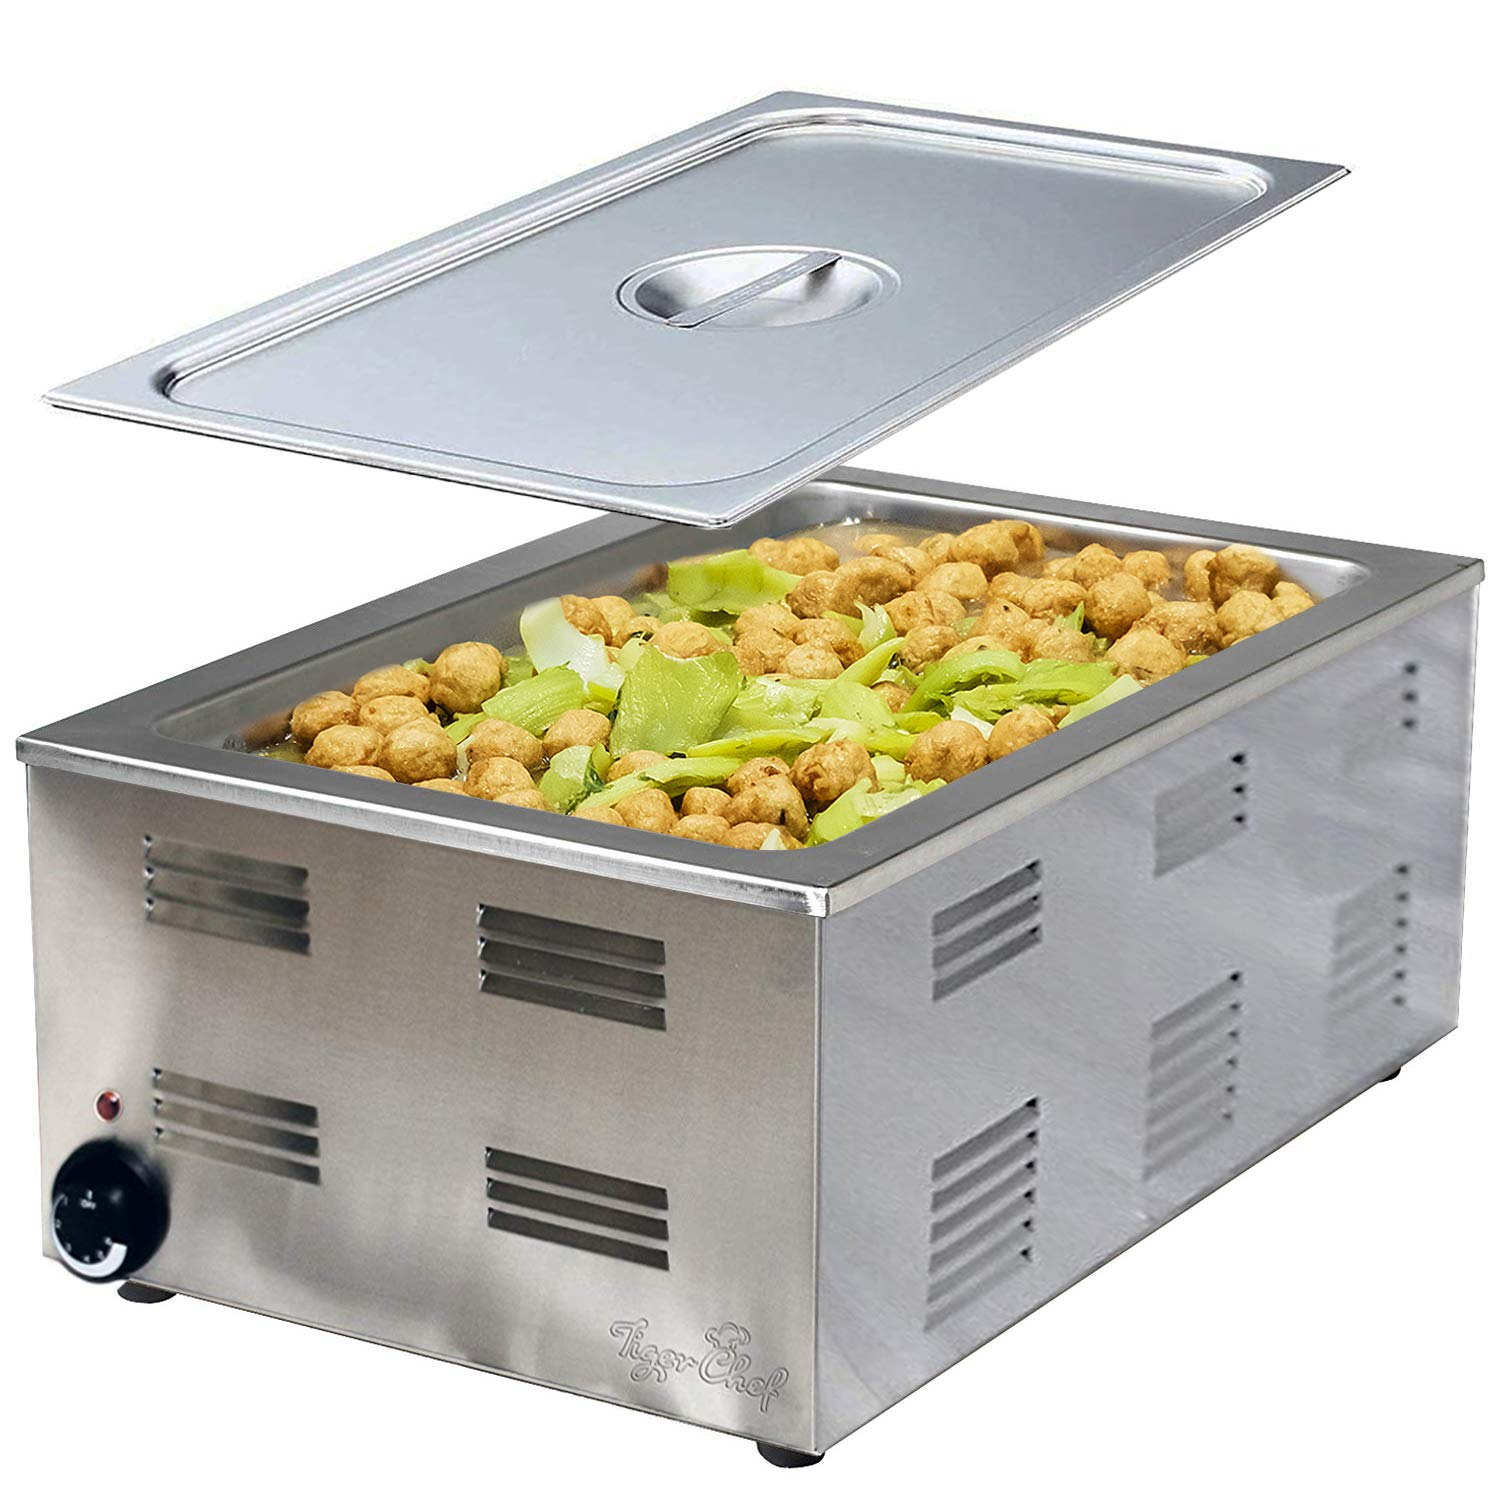 Tiger Chef Food Warmer - Full Size Countertop Food Warmers - Commercial Electric Steam Table for Buffet - Includes Steam Table Pan Cover by Tiger Chef